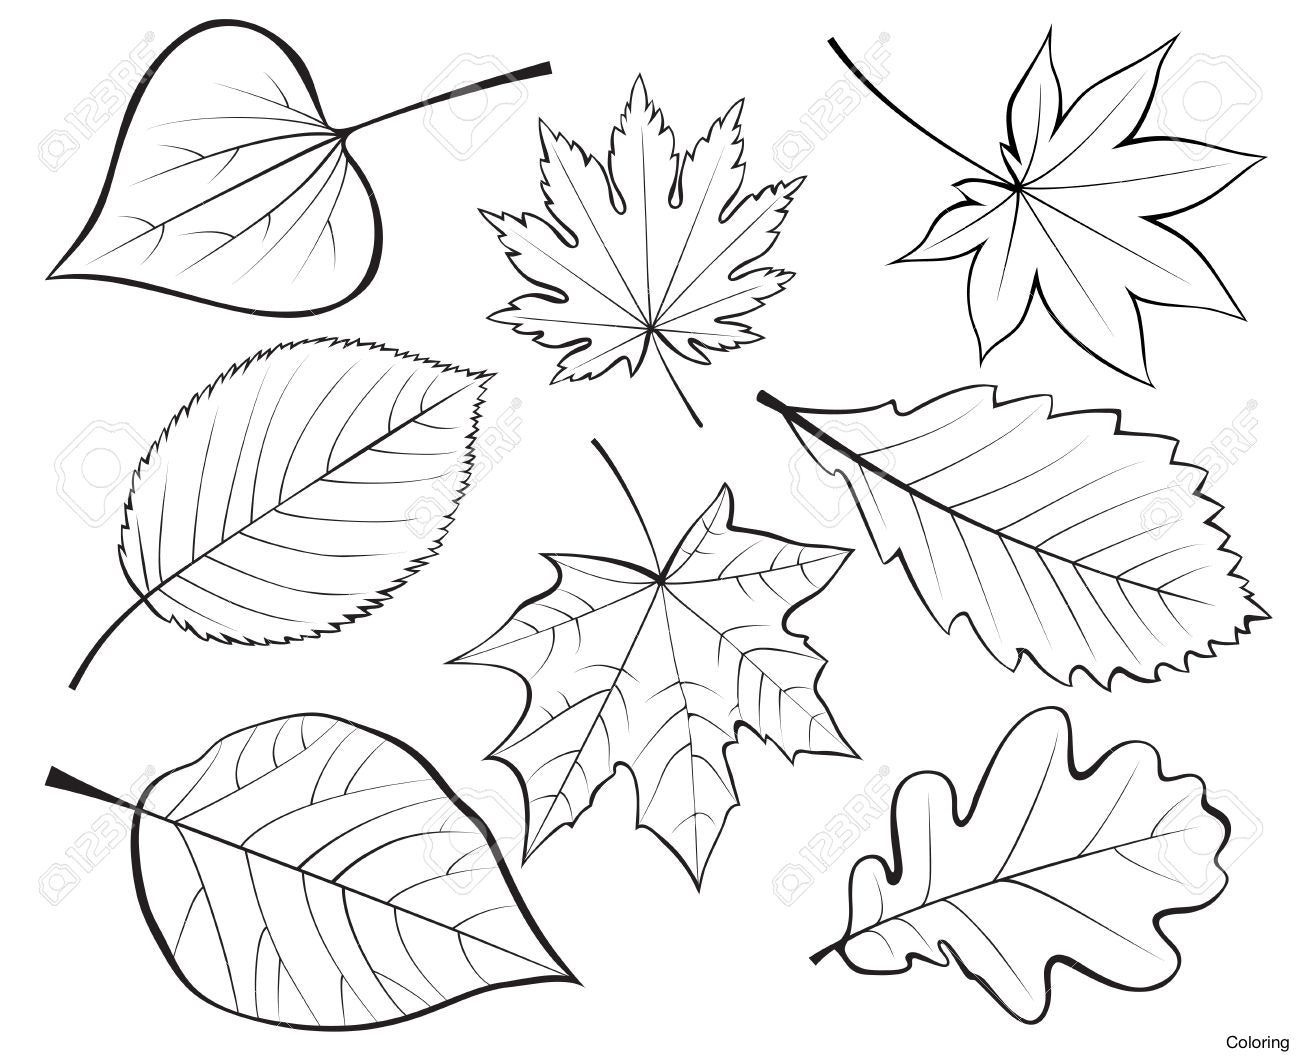 1300x1058 Hd Stock Vector Bamboo Leaves Drawing Of Coloring 21f Falling